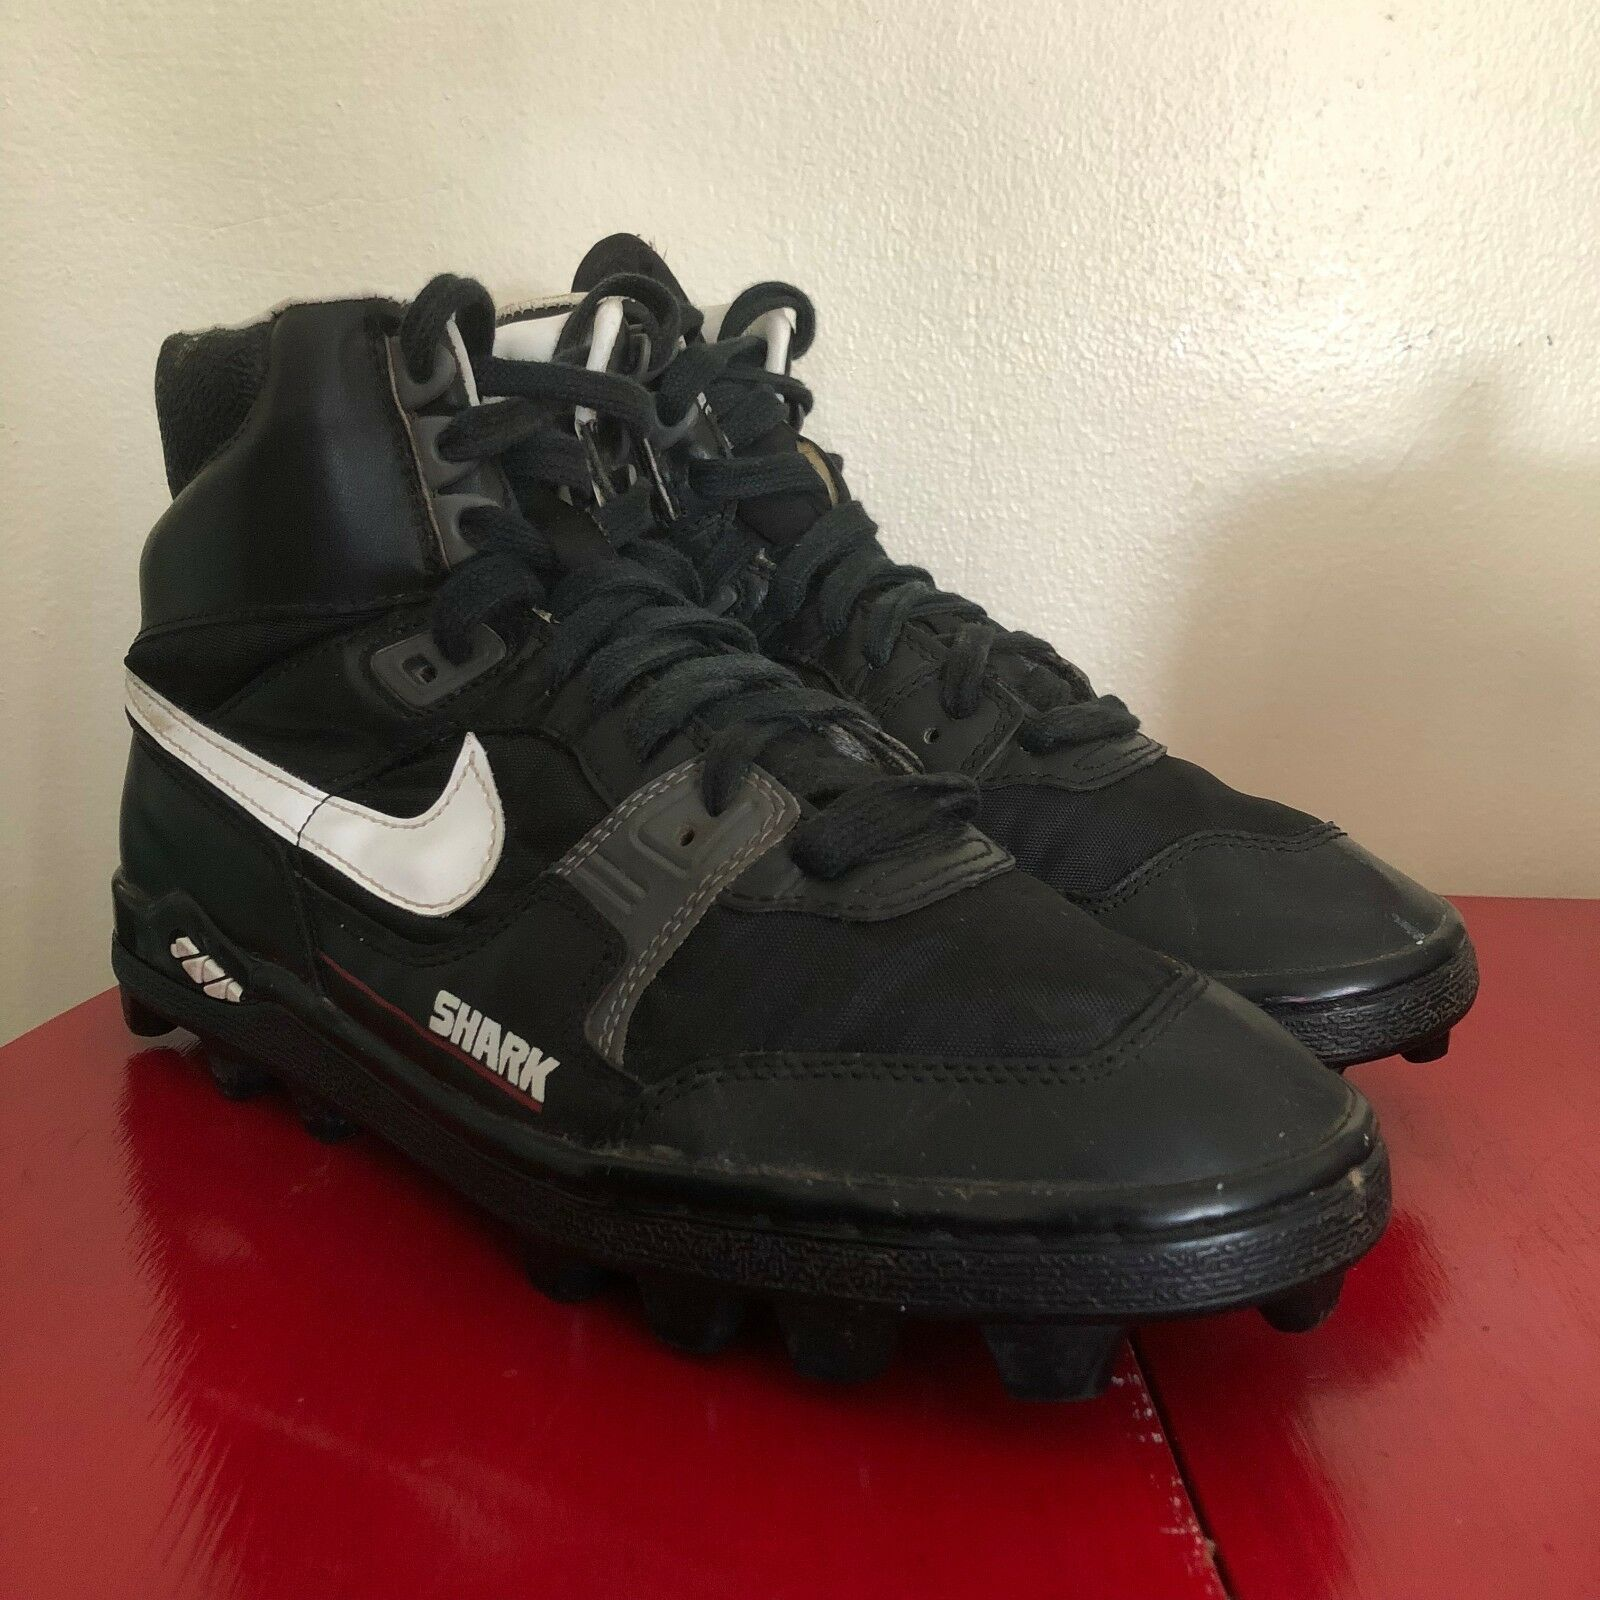 size 40 ffc97 980fc VINTAGE NIKE 1980 S SHARK HI TOP FOOTBALL CLEATS CLEATS CLEATS BLACK SIZE  9.5 - RARE BASEBALL 5f3a93